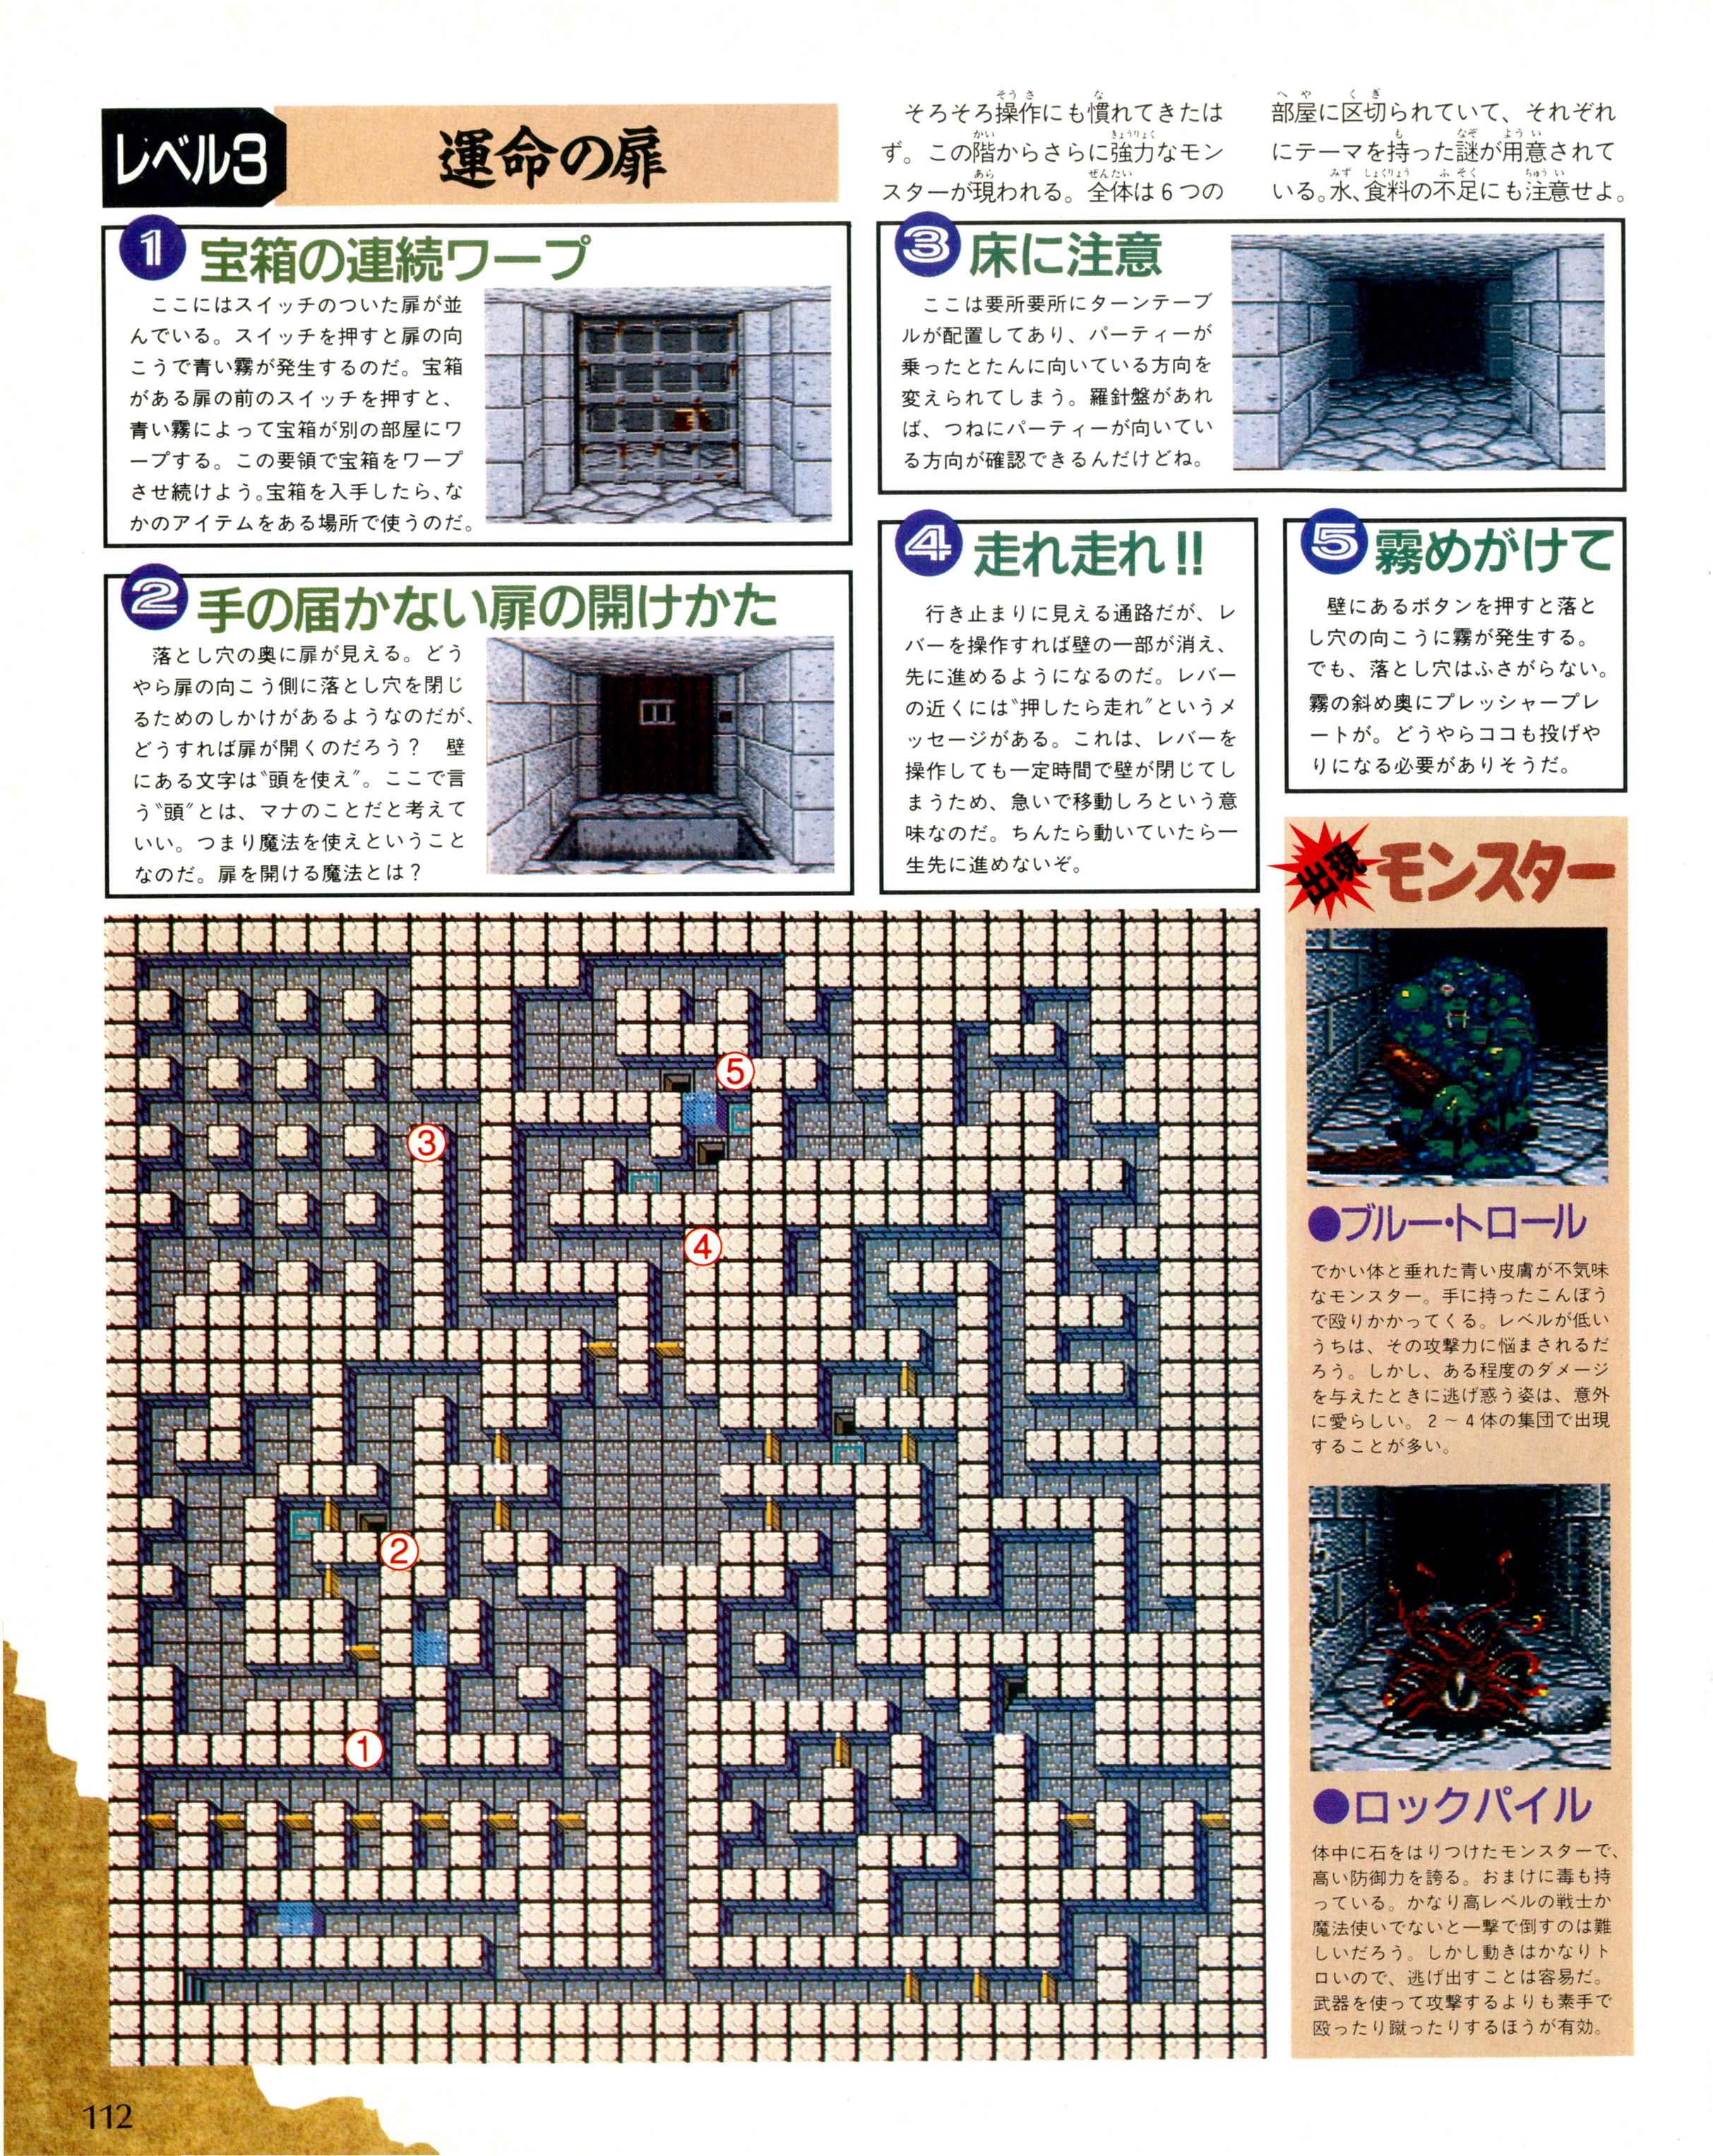 Dungeon Master for Super Famicom Guide published in Japanese magazine 'Famitsu', Issue #159 03 January 1992, Page 112